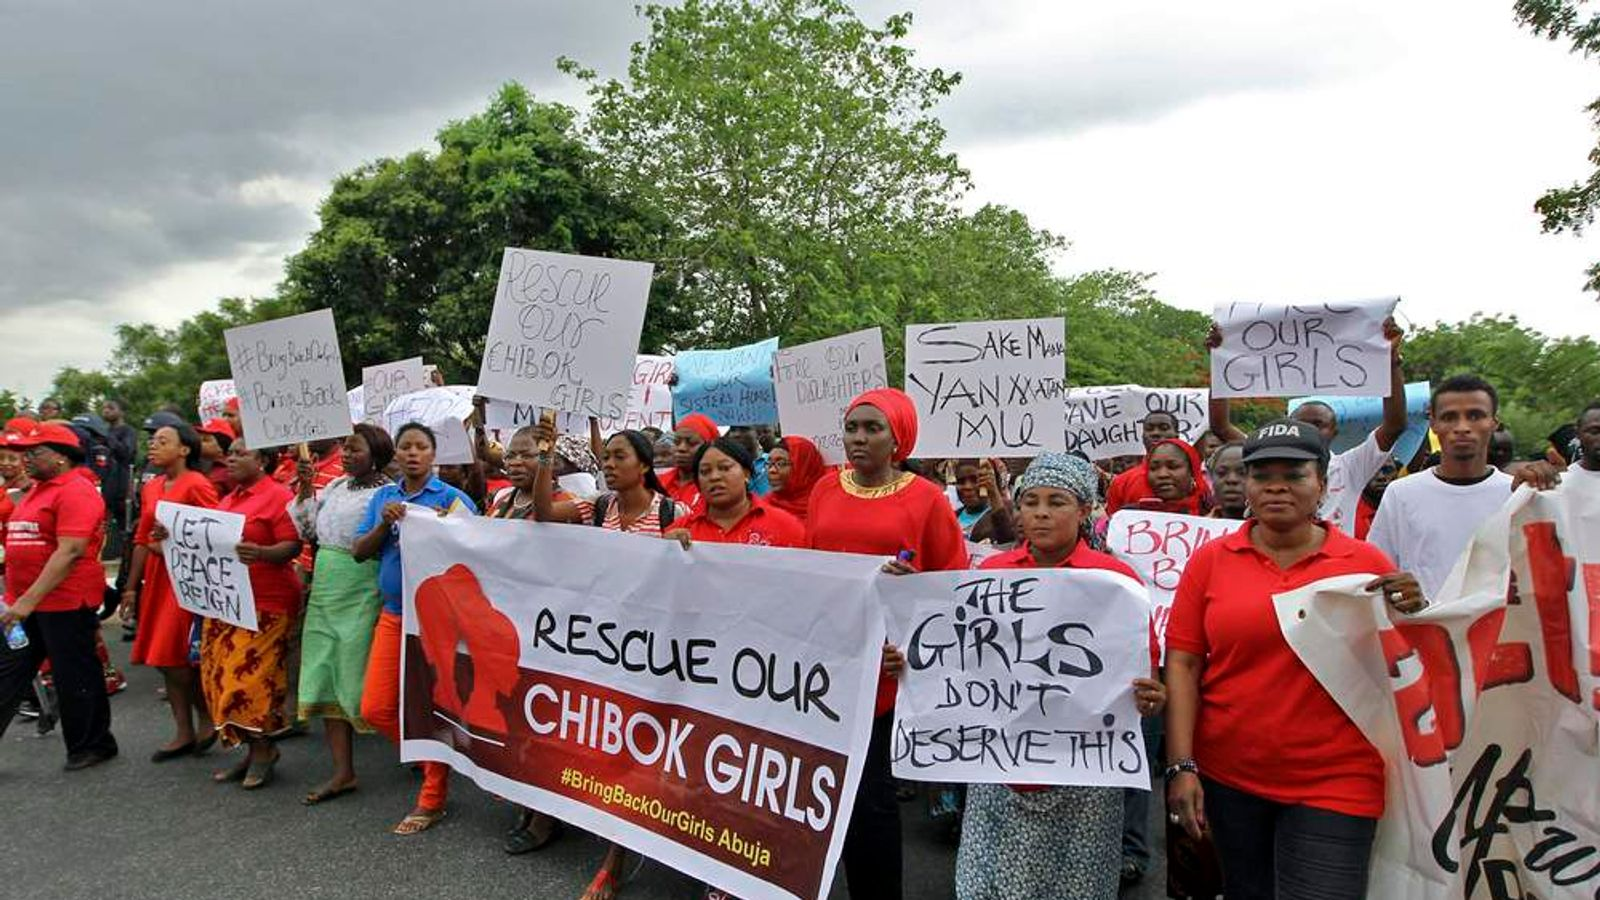 Members of various CSOs protest against the delay in securing the release of the abducted schoolgirls who were kidnapped, in Abuja